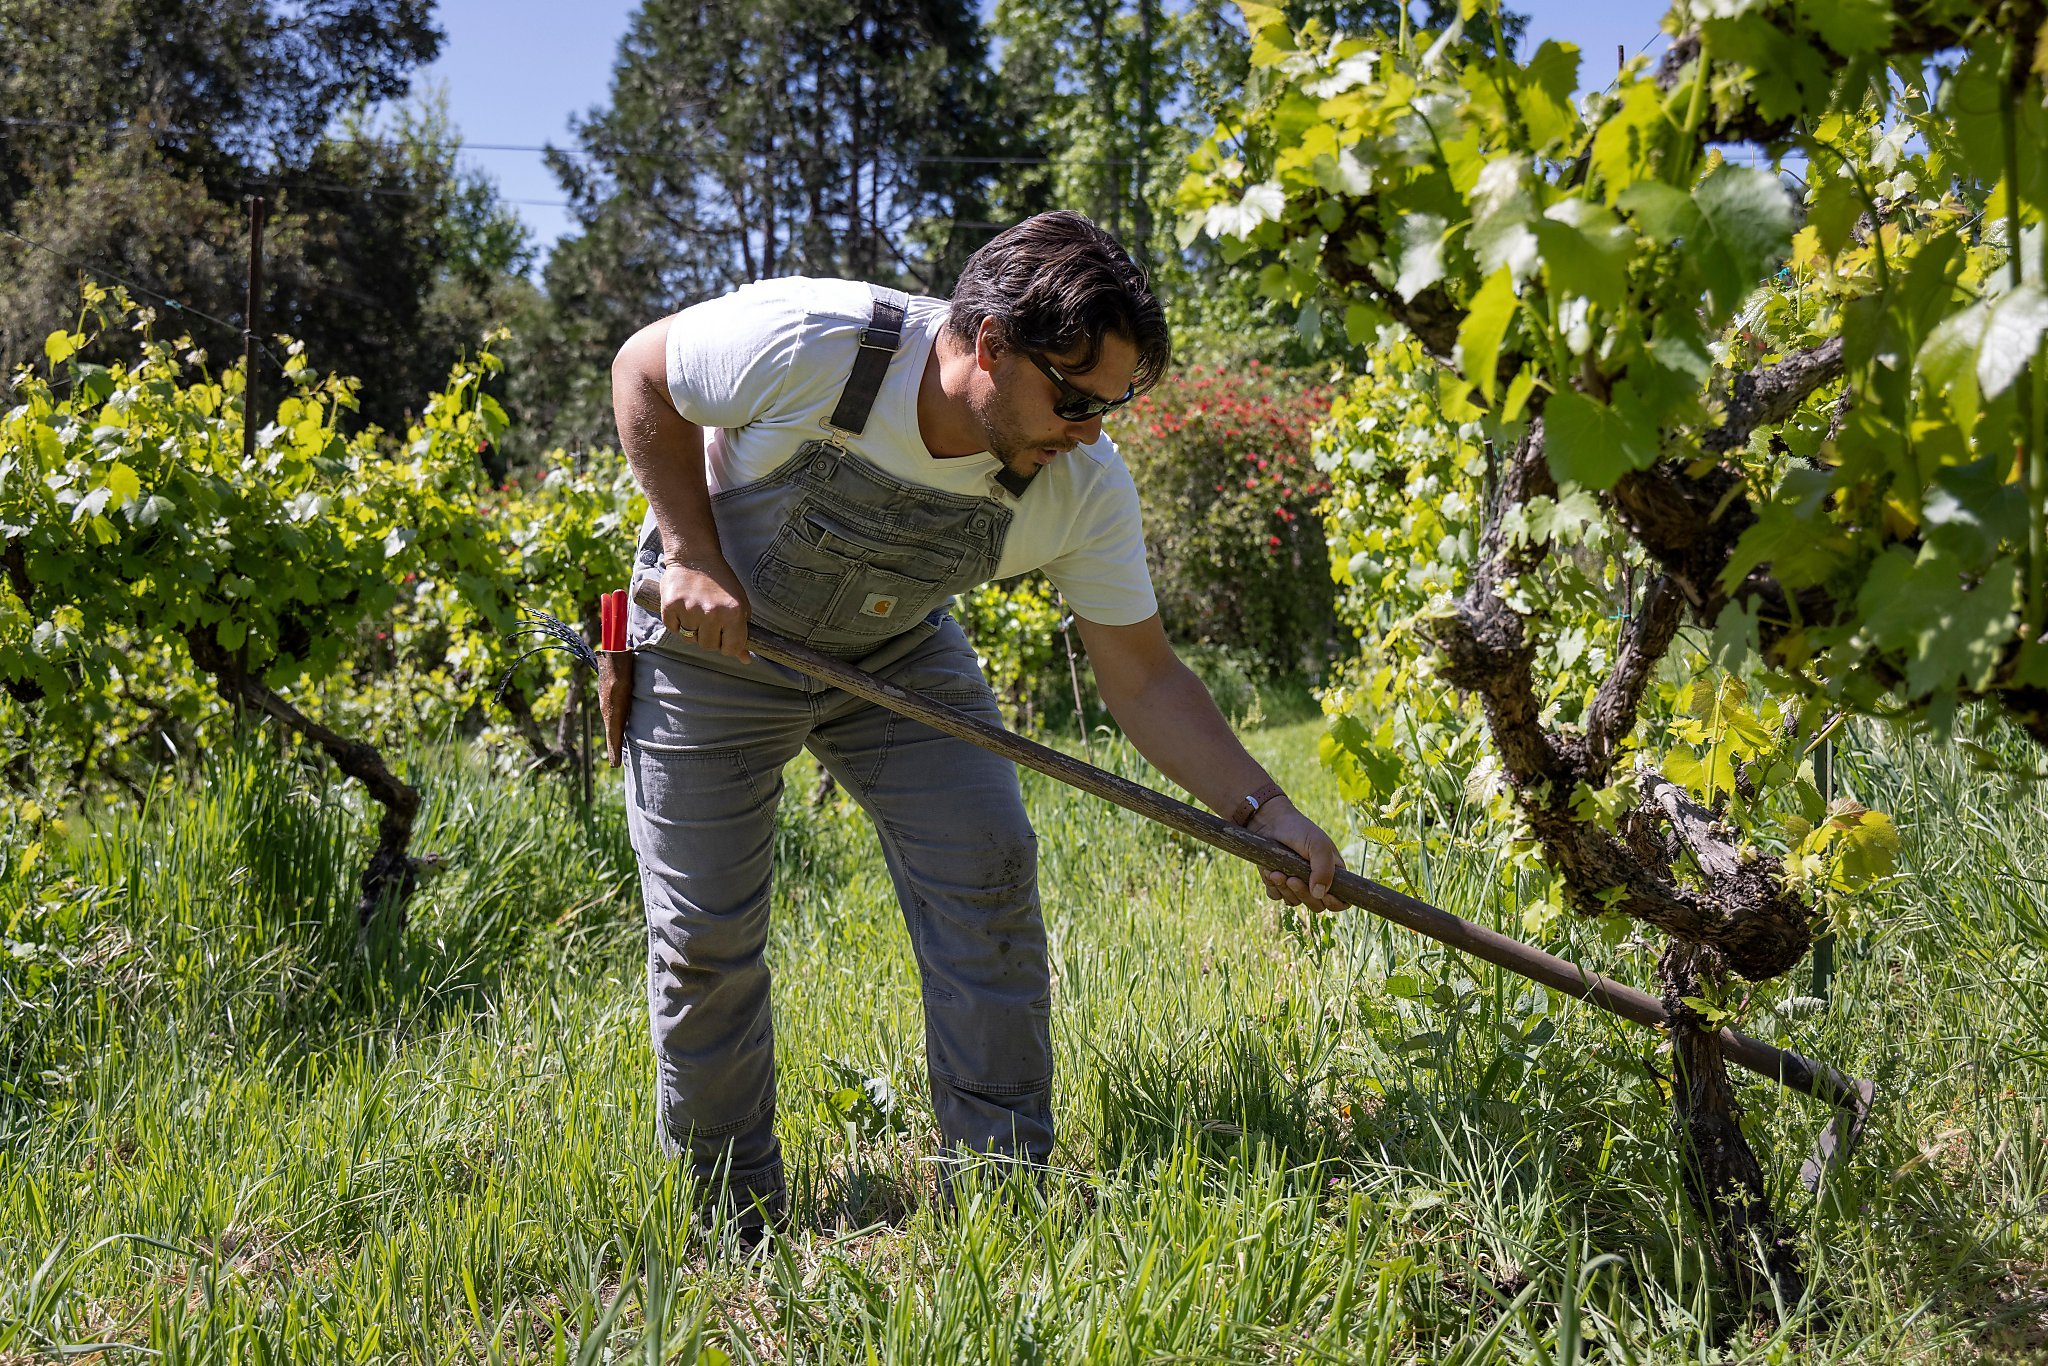 Indigenous North American grapevines, not the standard European varieties, may be California wine's answer to climate change